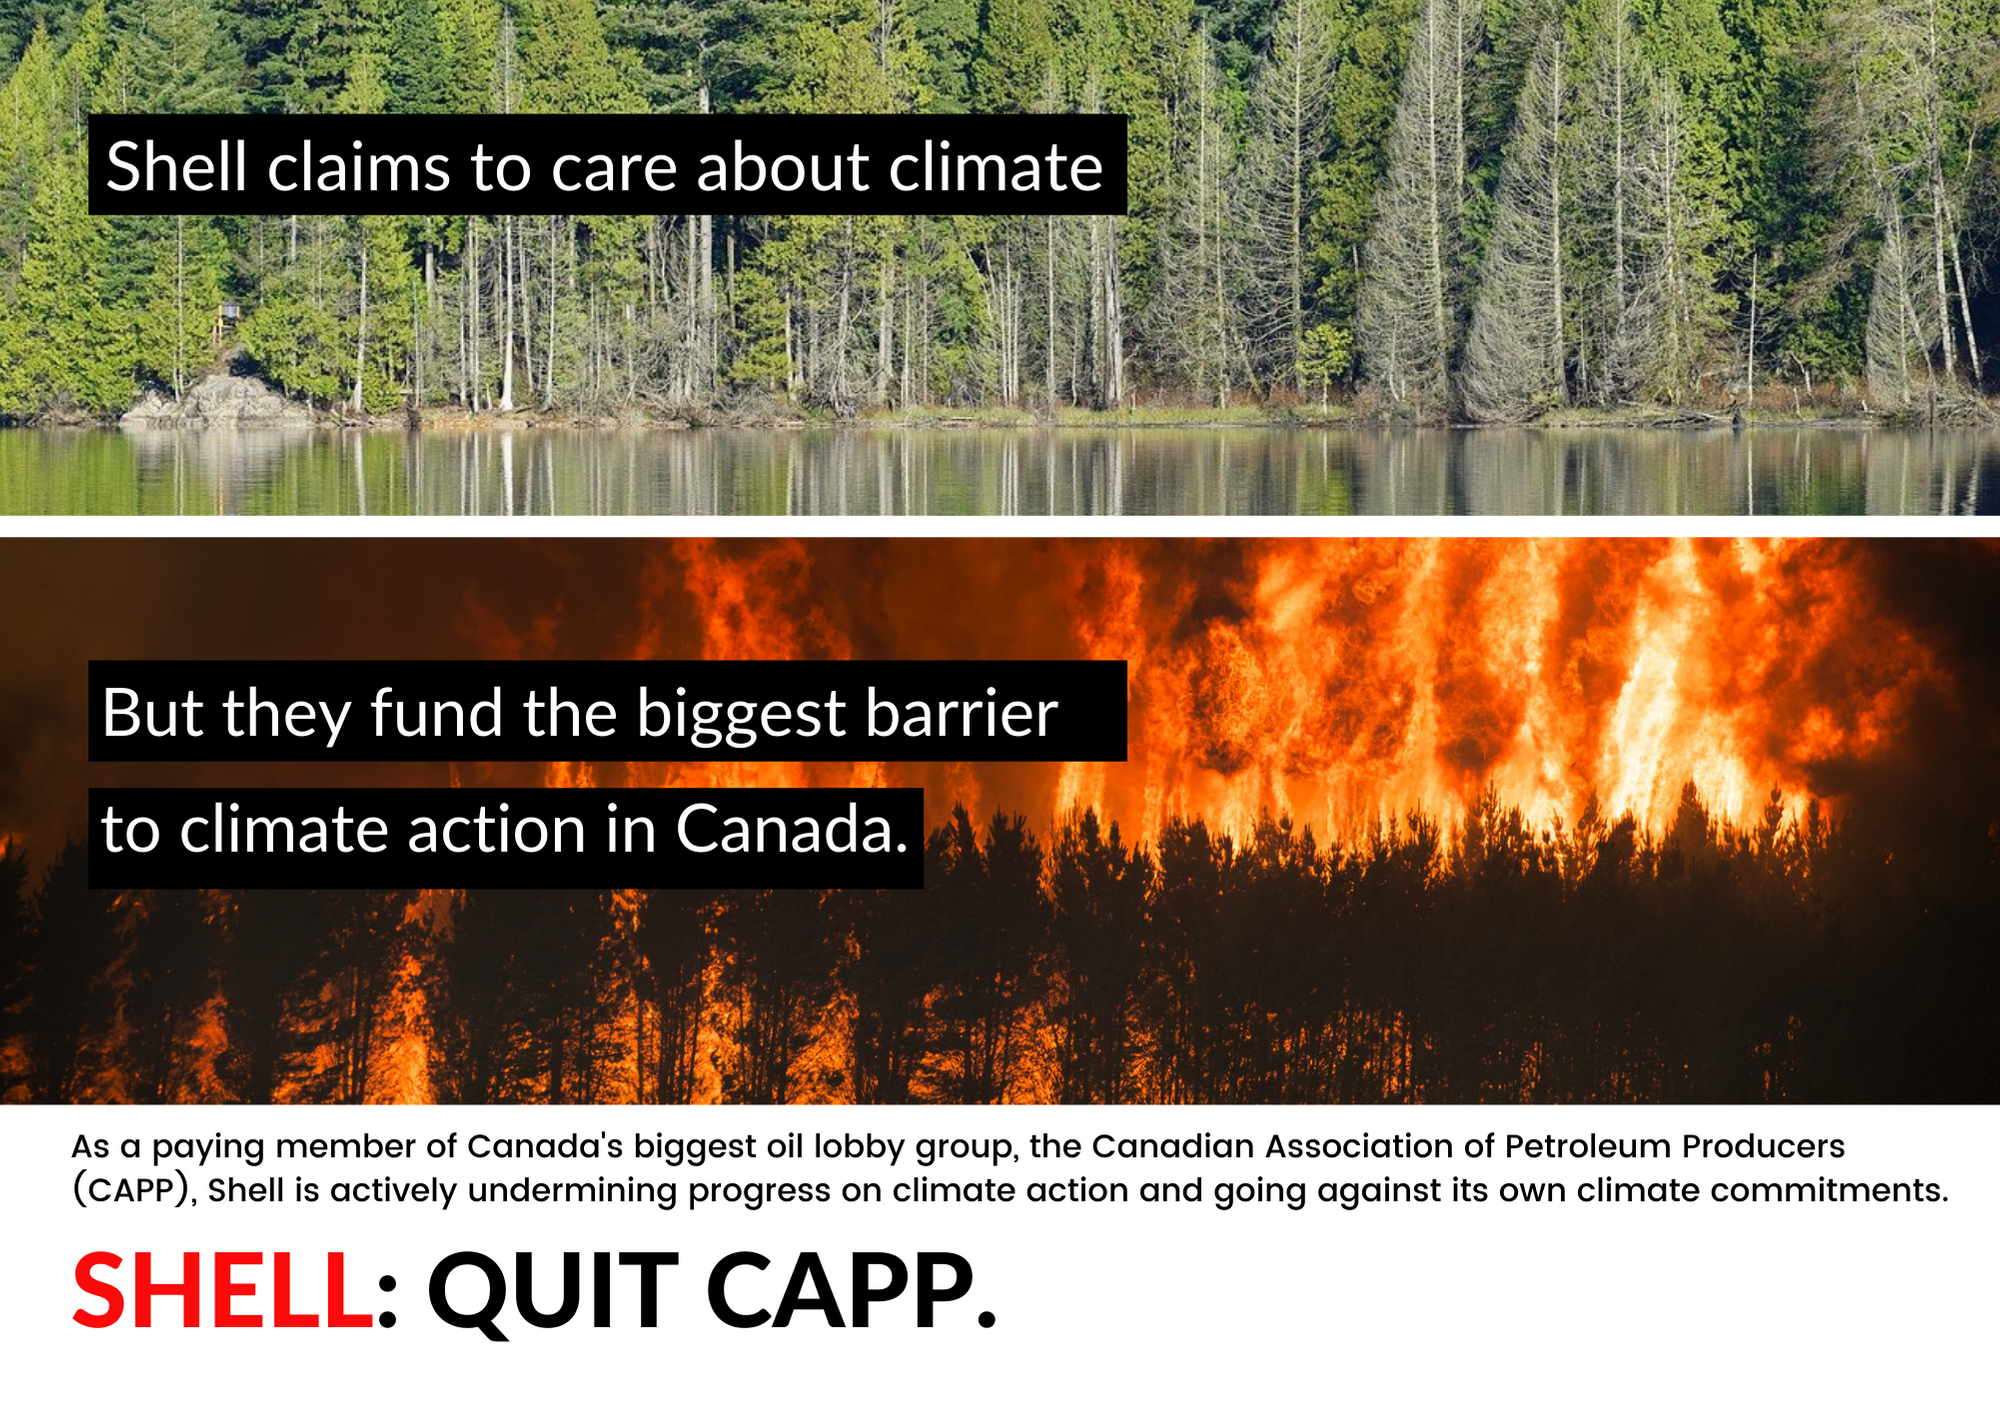 Ad calling on Shell to quit CAPP